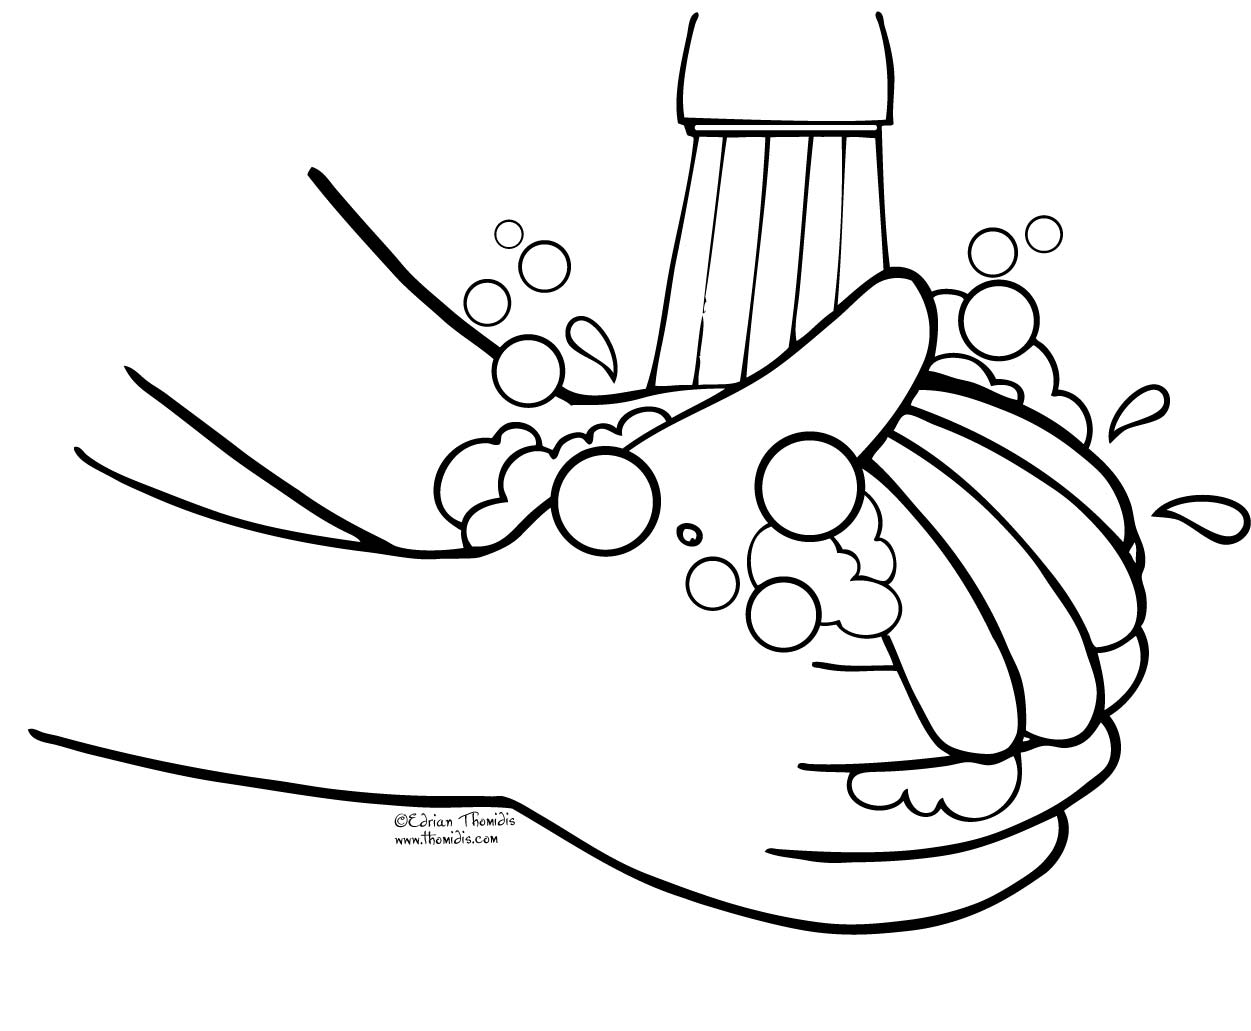 Printable Hand Washing Coloring Pages Clipart   Free Clip Art Images